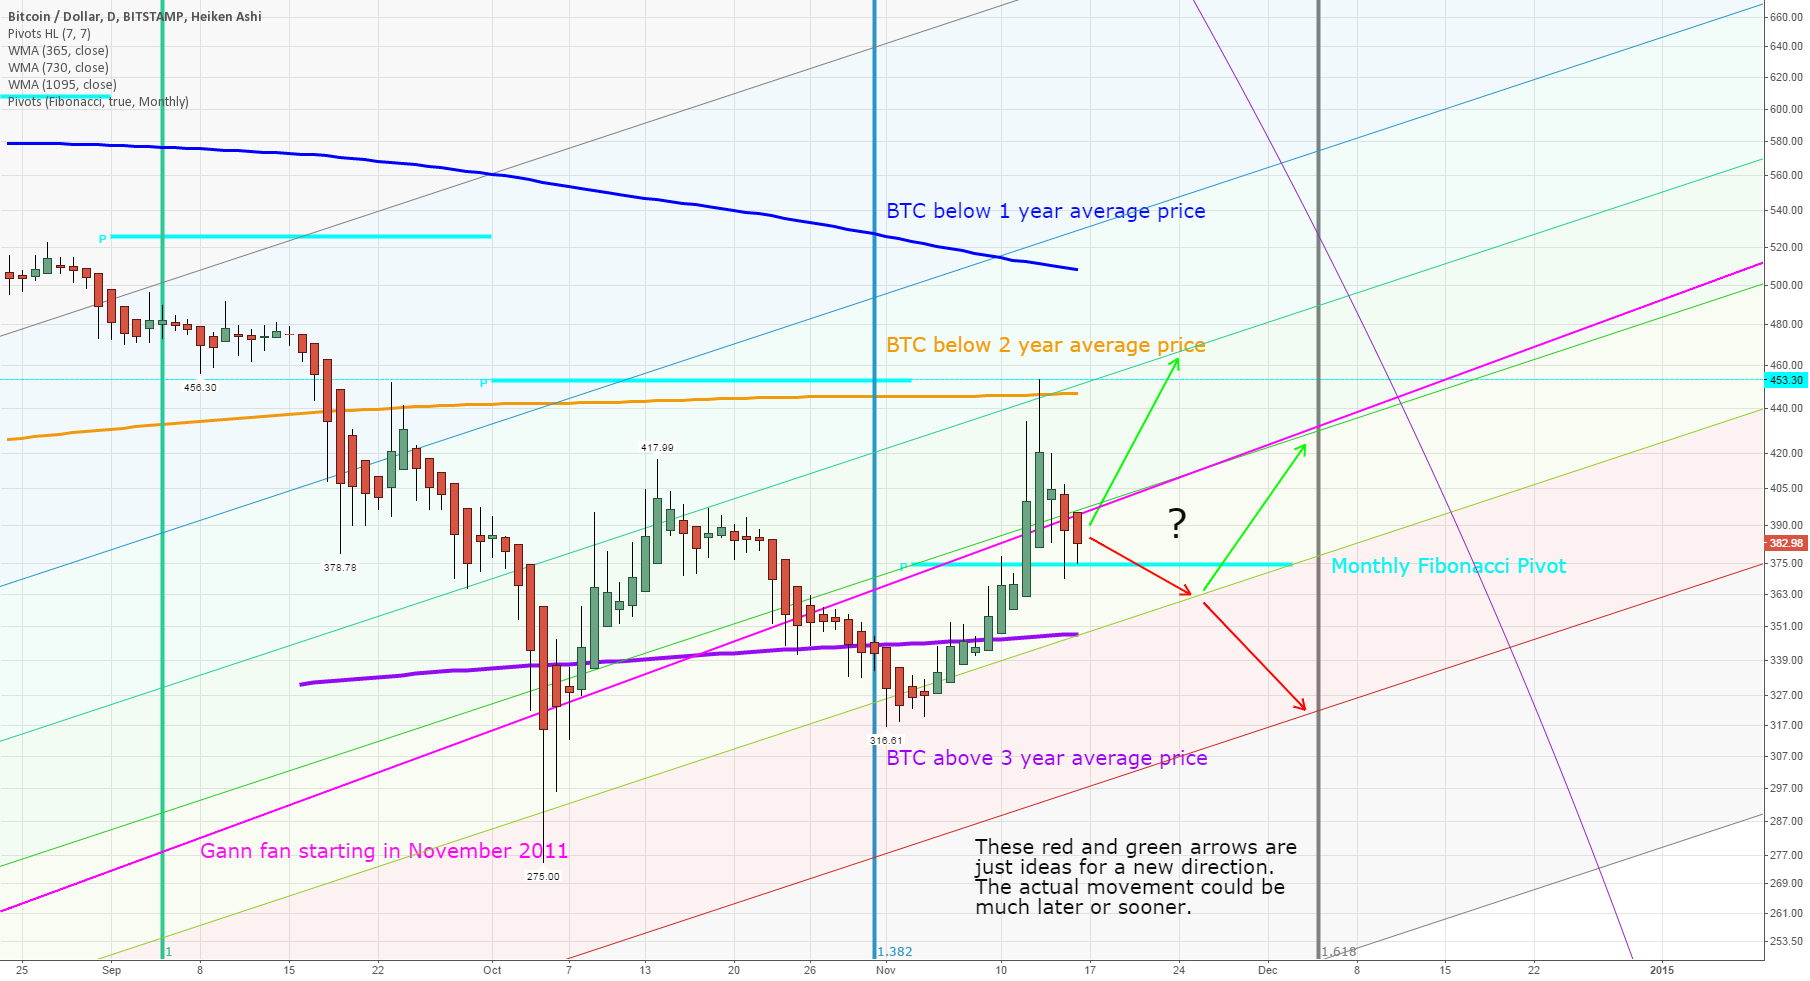 The next 6 weeks will determine the Bitcoin price trend of 2015